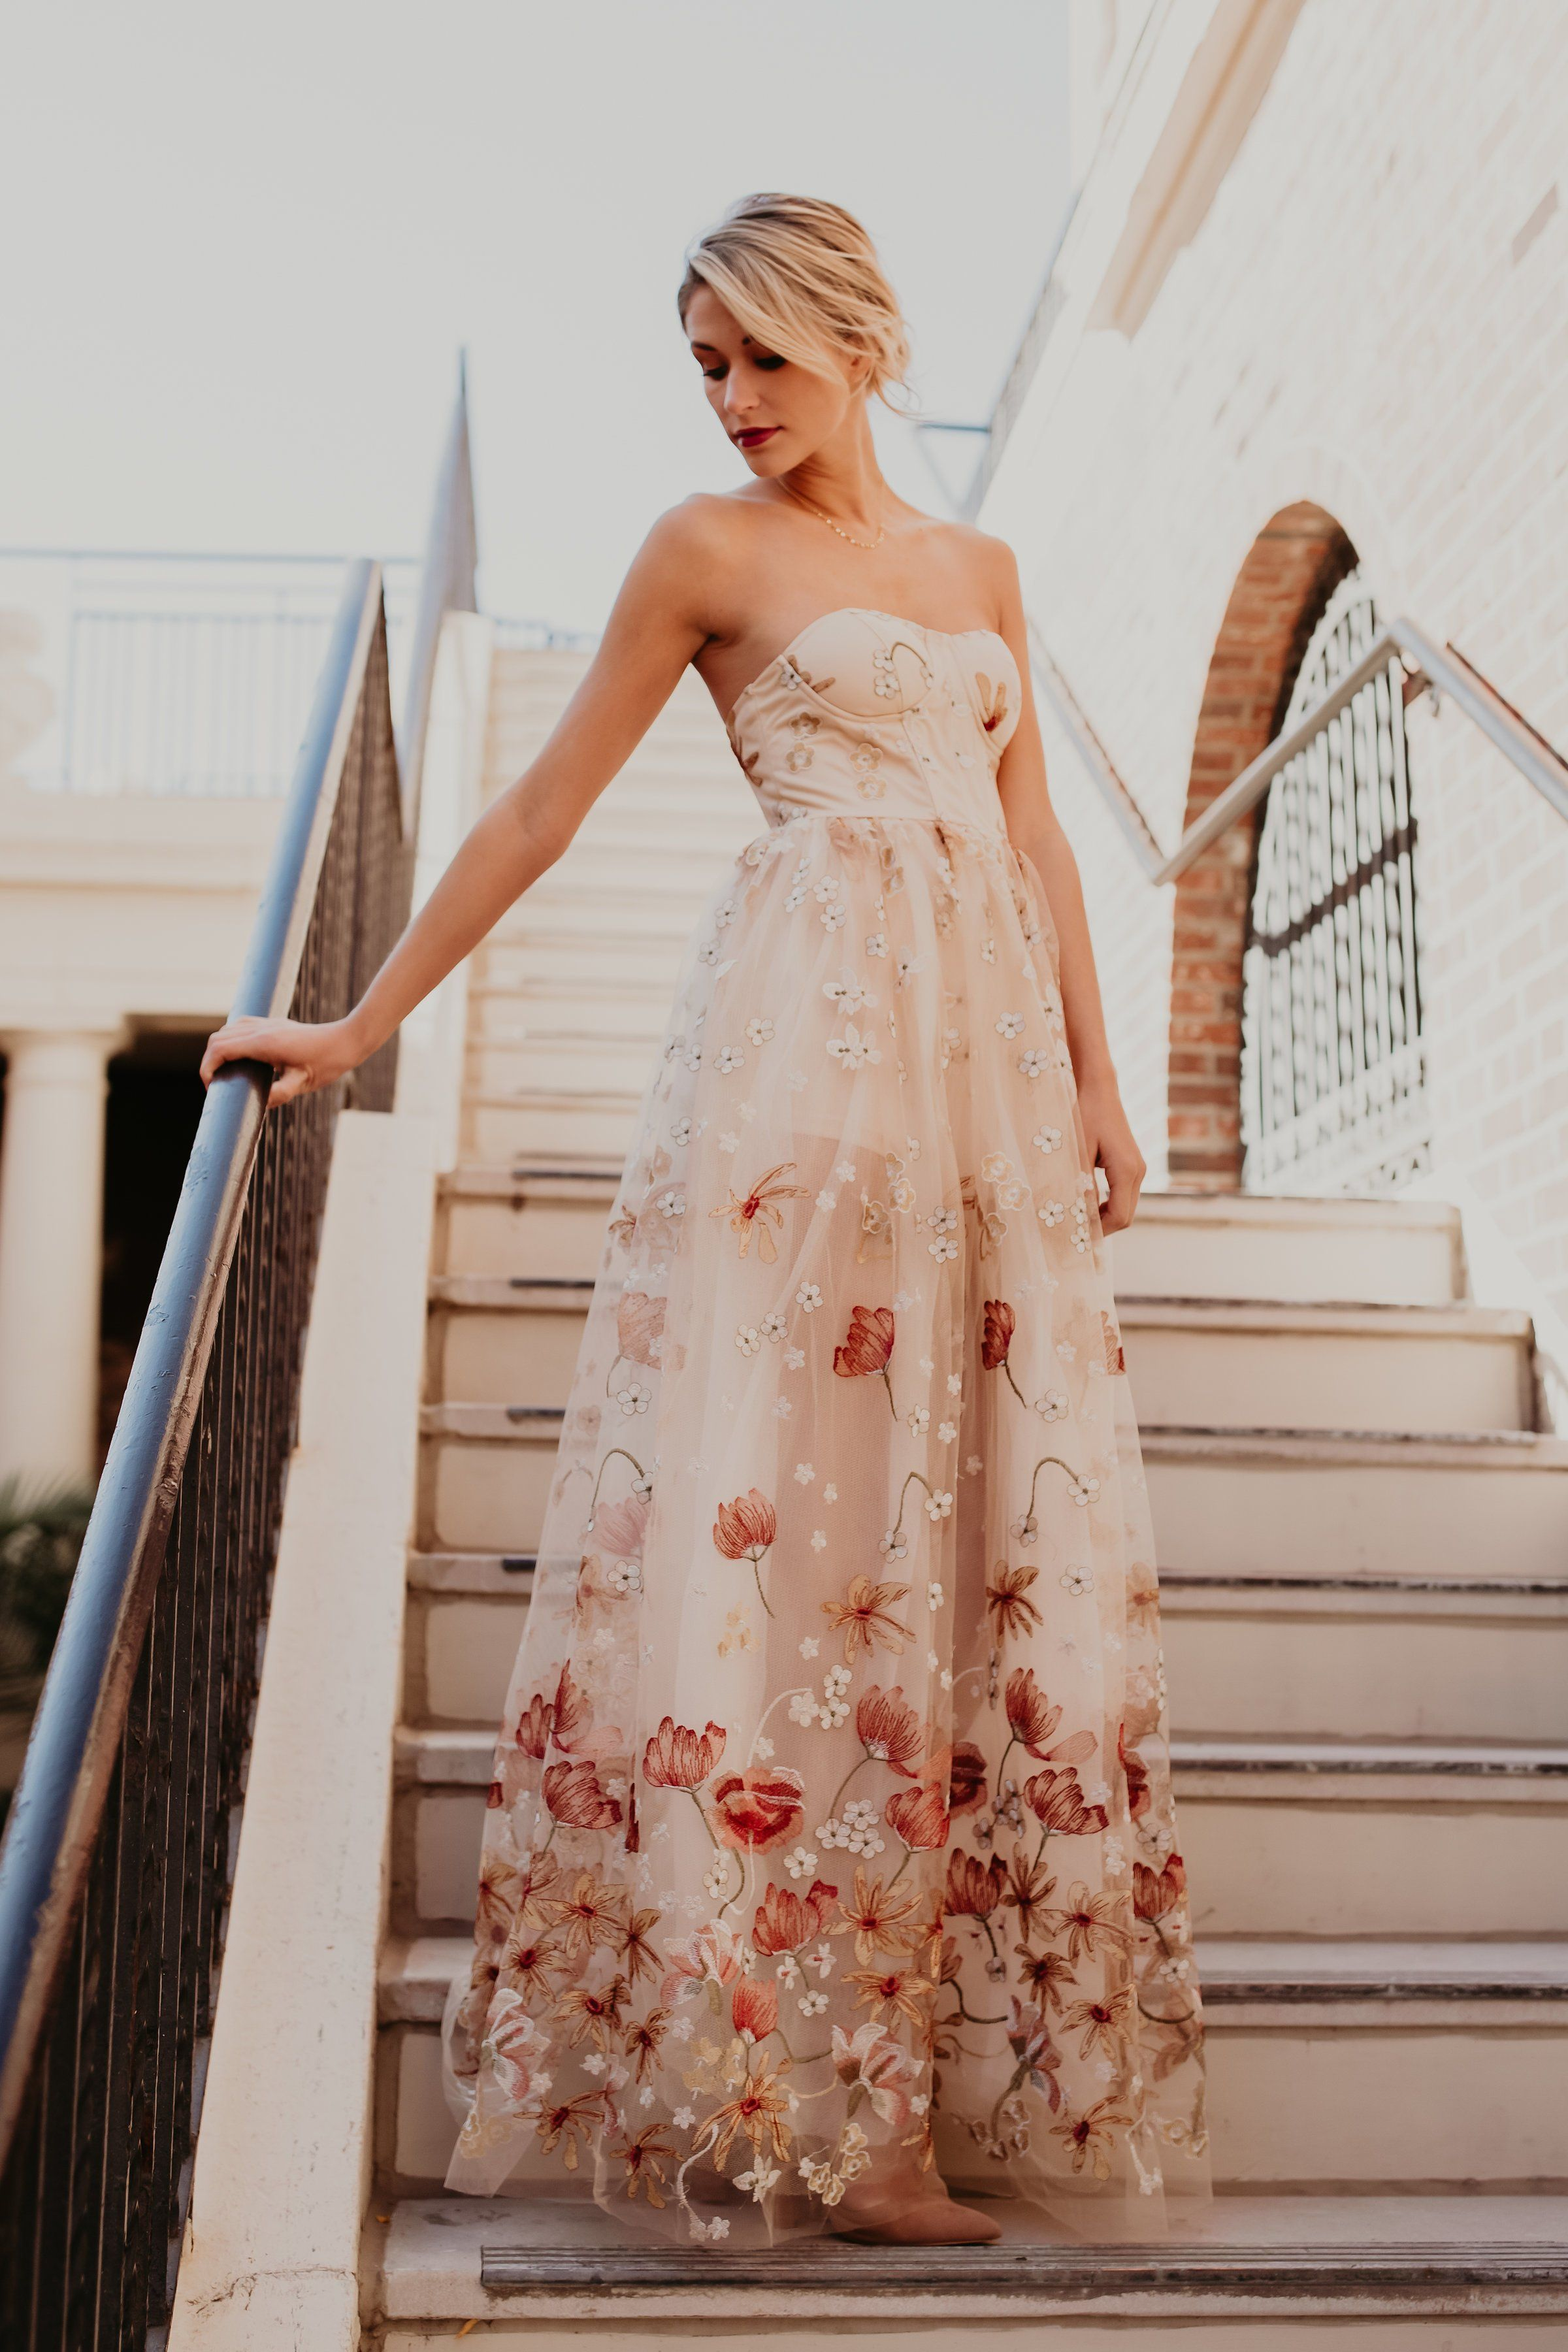 Whimsical Garden Embroidered Maxi Dress Strapless Dress Formal Dresses Embroidered Maxi Dress [ 3600 x 2400 Pixel ]